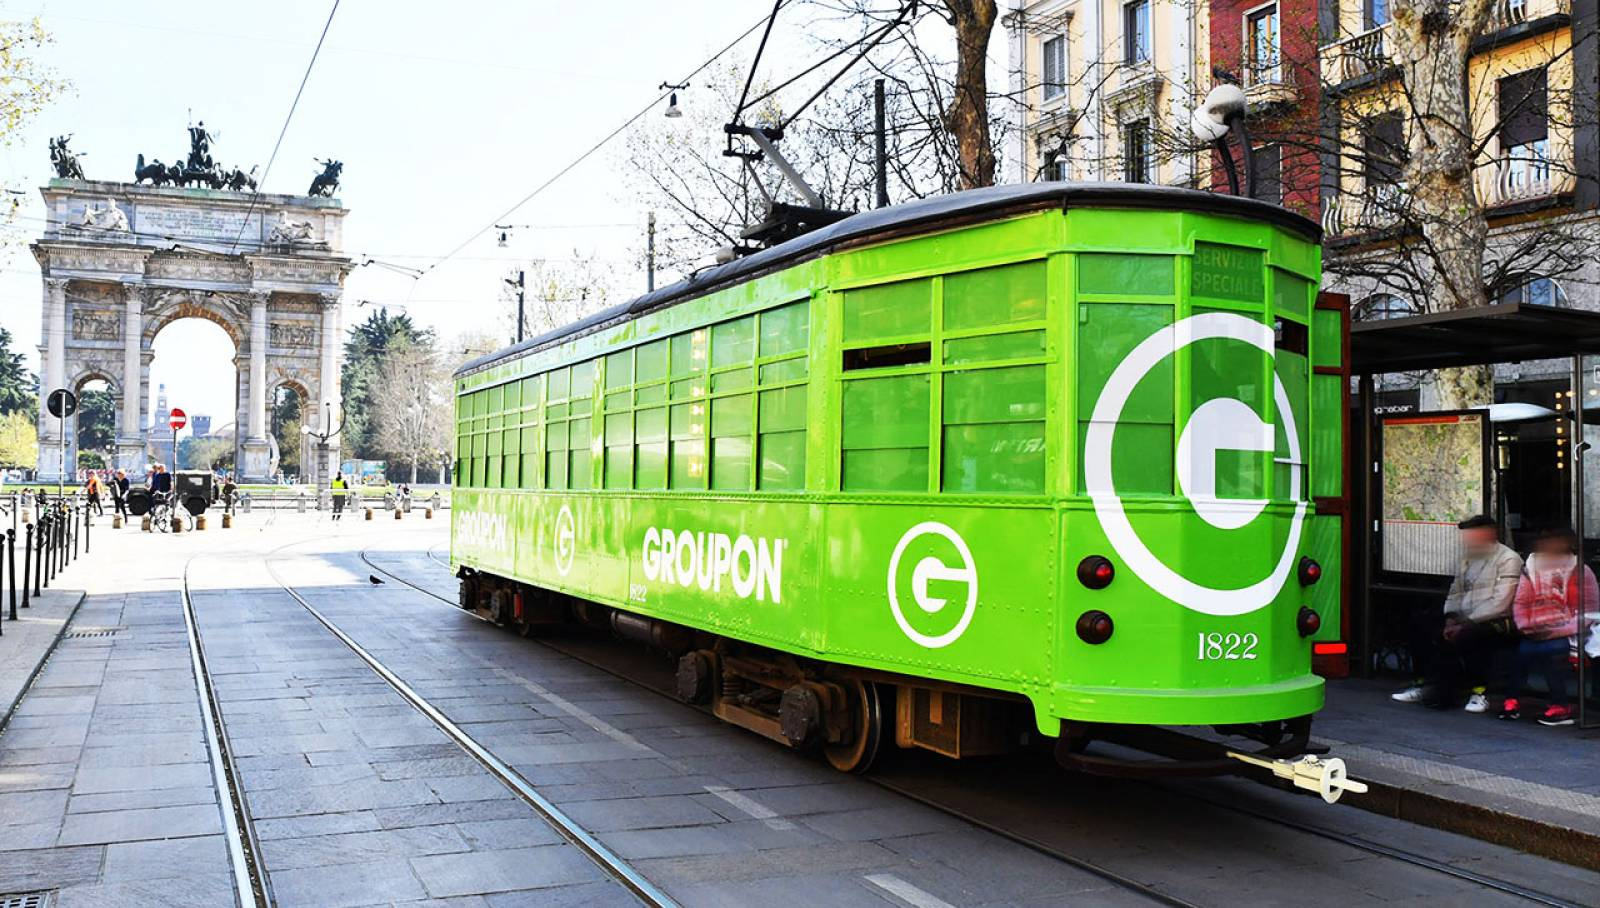 OOH IGPDecaux advertising special tram for Groupon